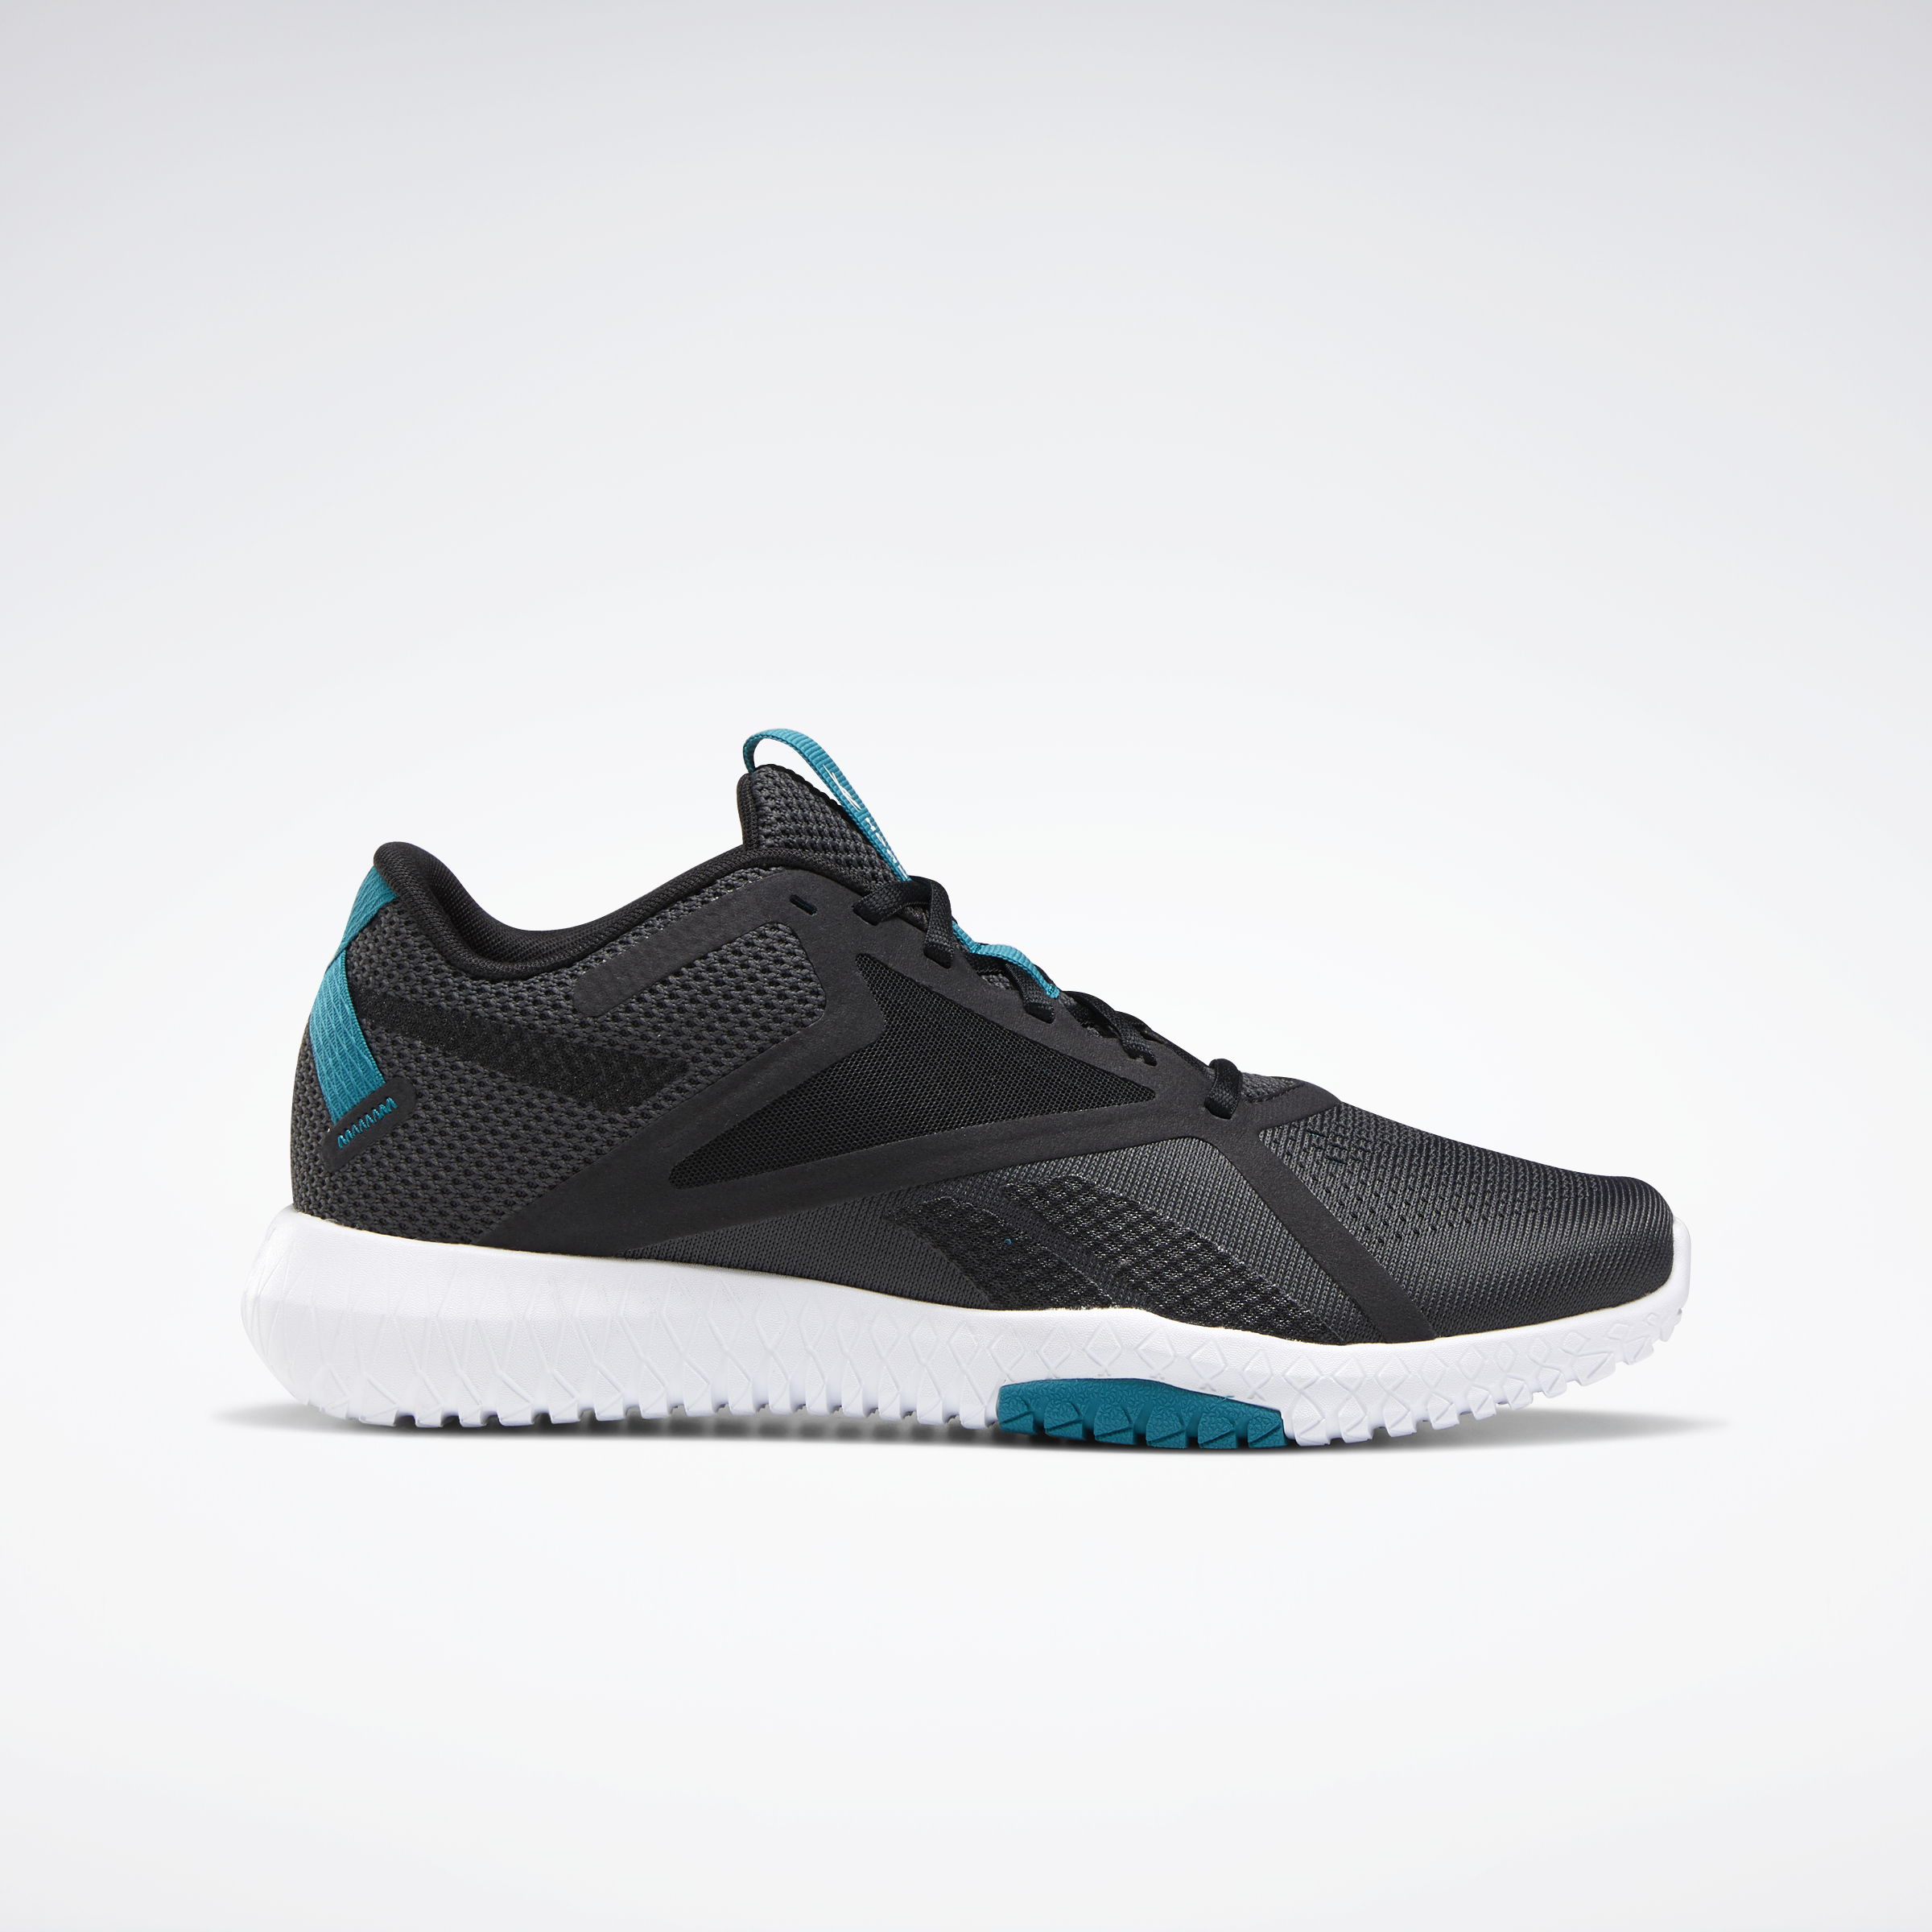 Reebok-Men-039-s-Flexagon-Force-2-Extra-Wide-Men-039-s-Training-Shoes-Shoes miniatura 16